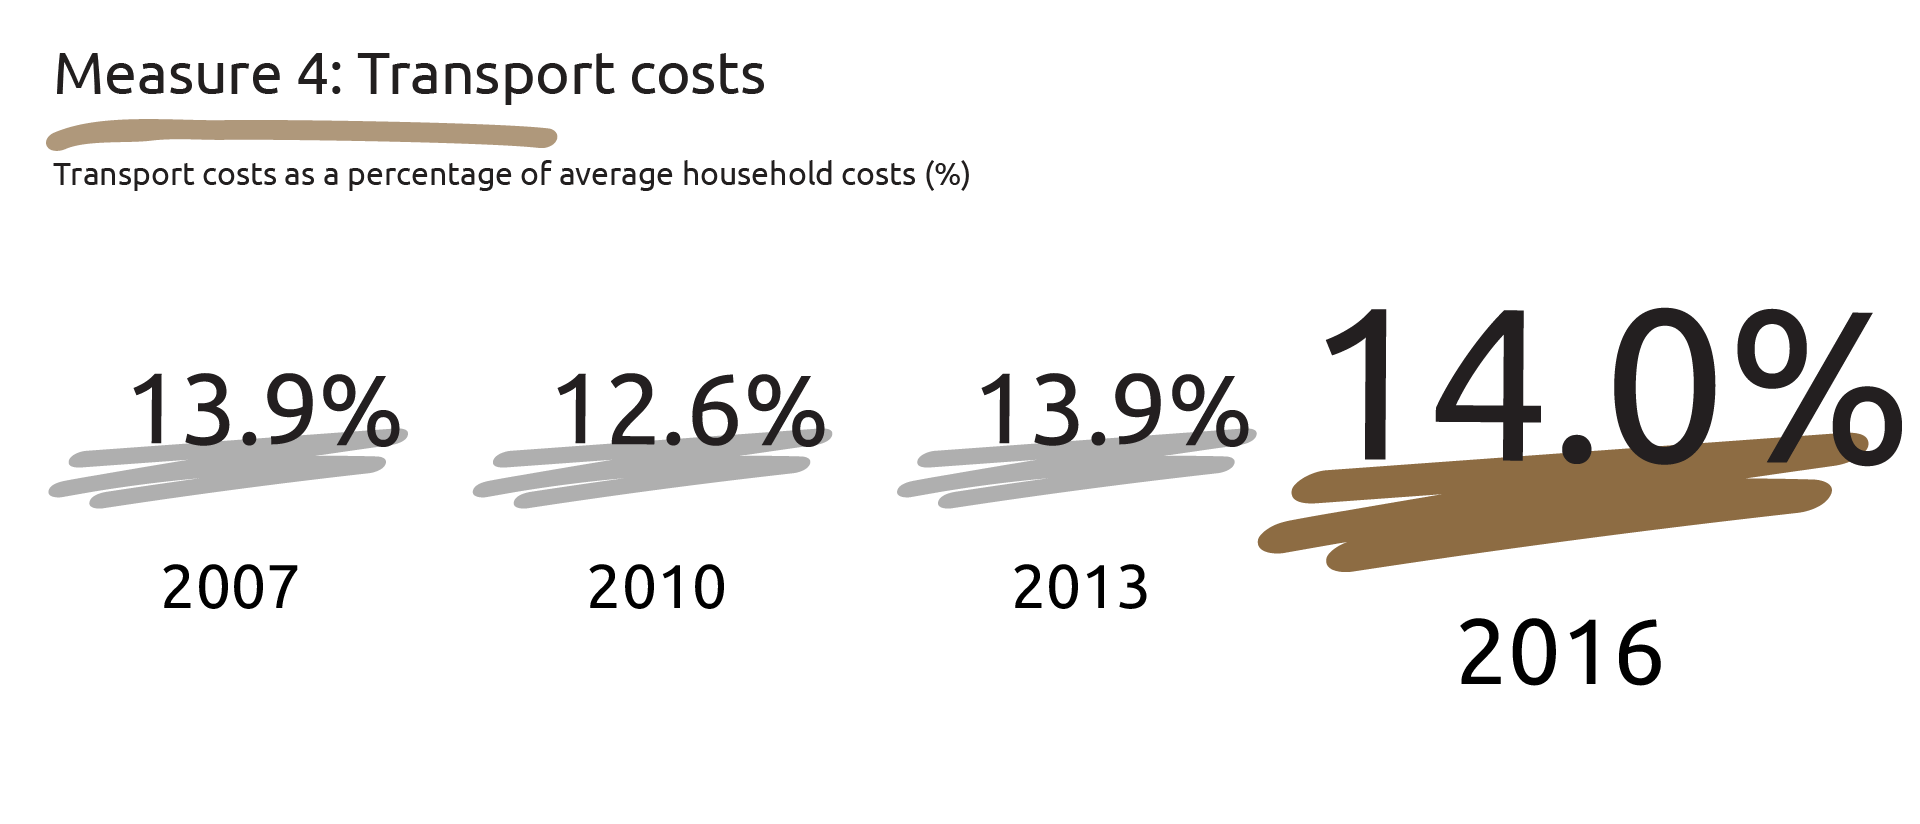 Graphic showing the transport costs as a percentage of average household costs: 2007 - 13.9 per cent, 2010 - 12.6 per cent, 2013 - 13.9 per cent and 2016 - 14.0 per cent.